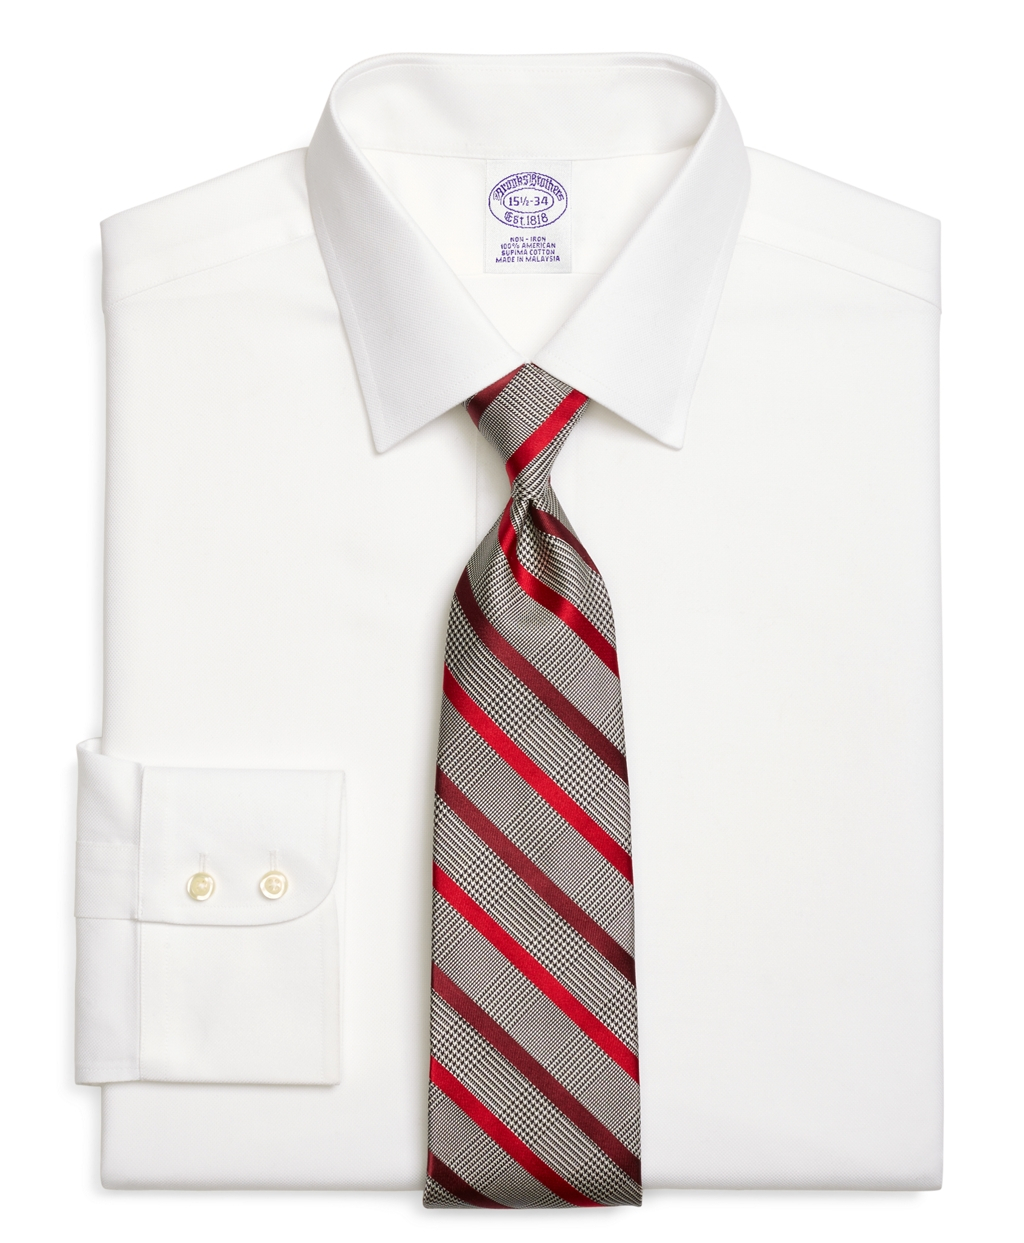 Brooks brothers non iron regent fit royal oxford dress for White non iron dress shirts